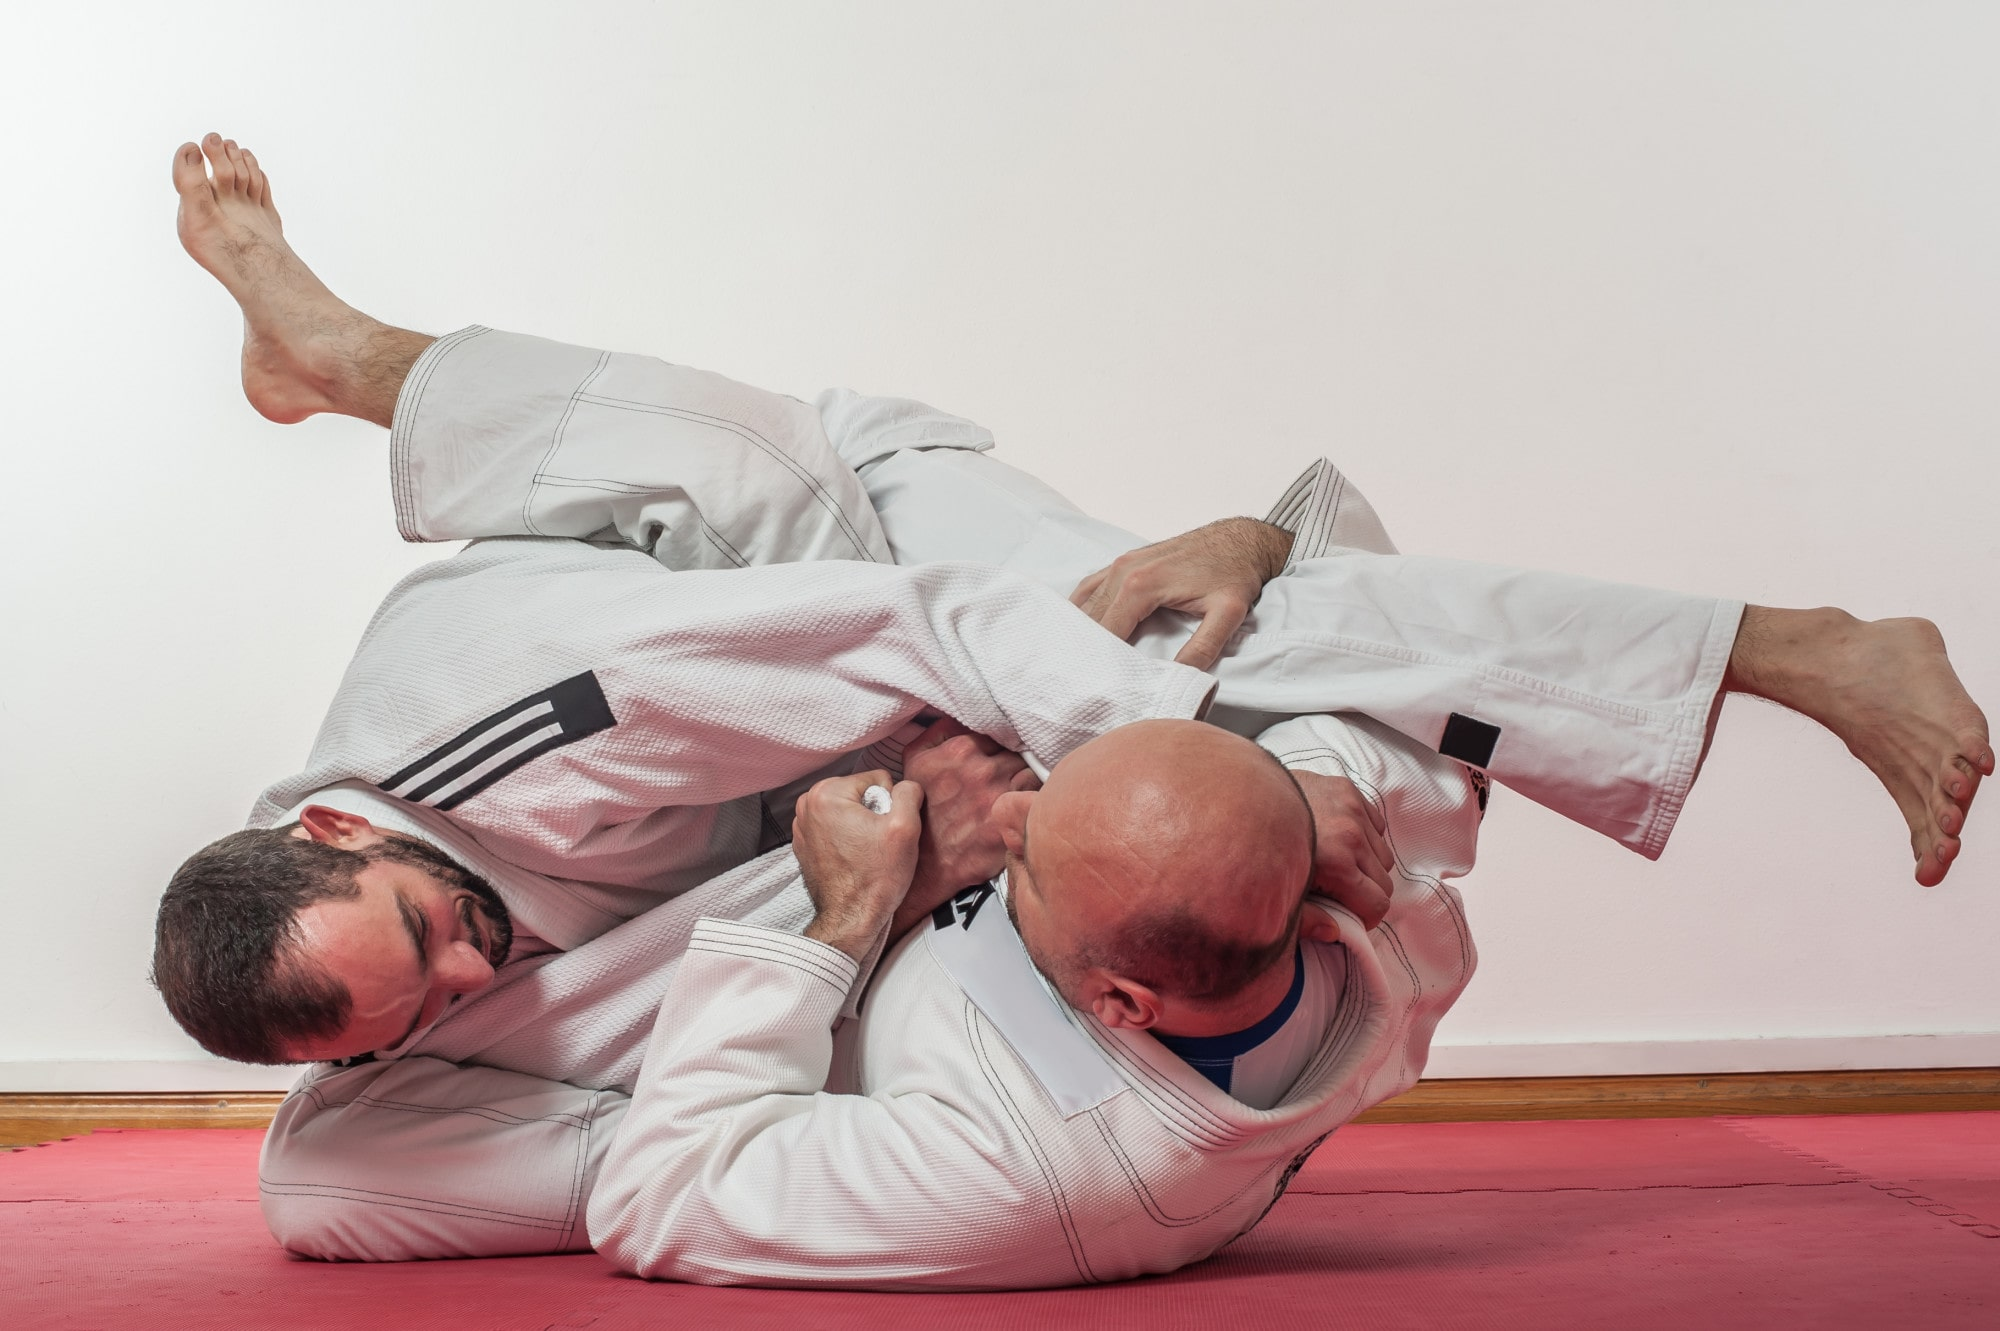 bjj practitioner performing a sweep